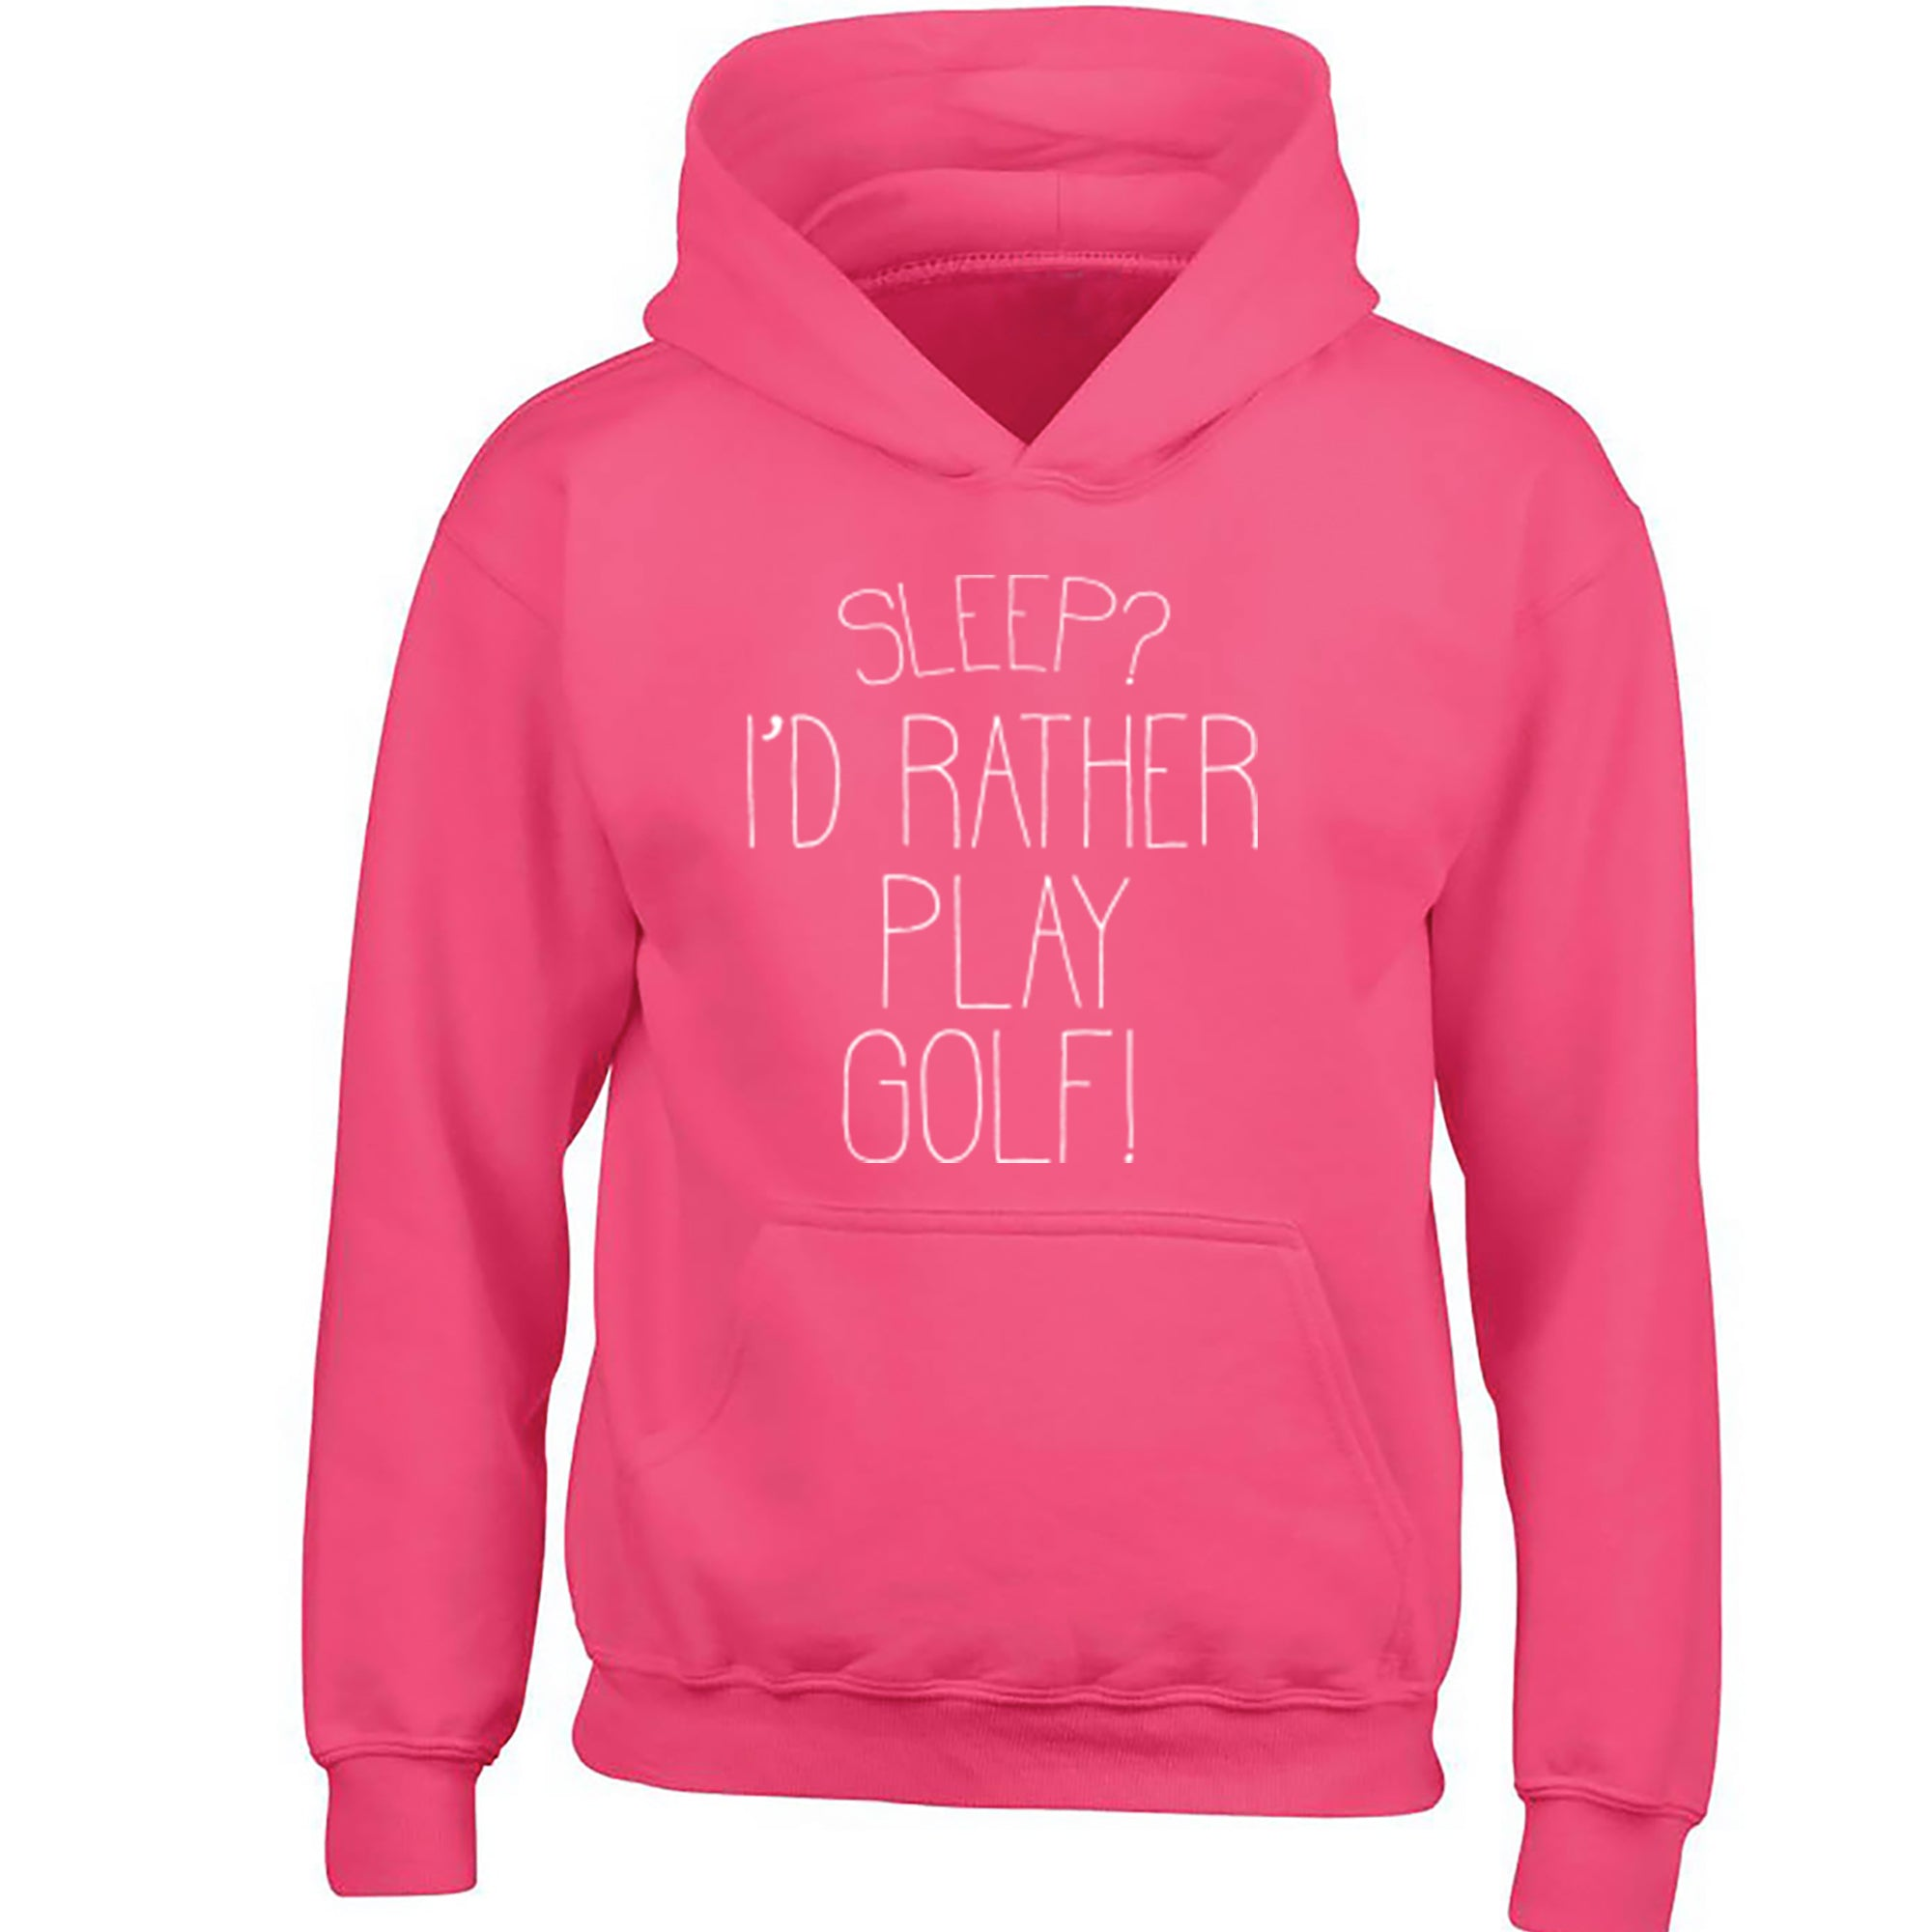 Sleep? I'd Rather Play Golf Childrens Ages 3/4-12/14 Unisex Hoodie S0472 - Illustrated Identity Ltd.